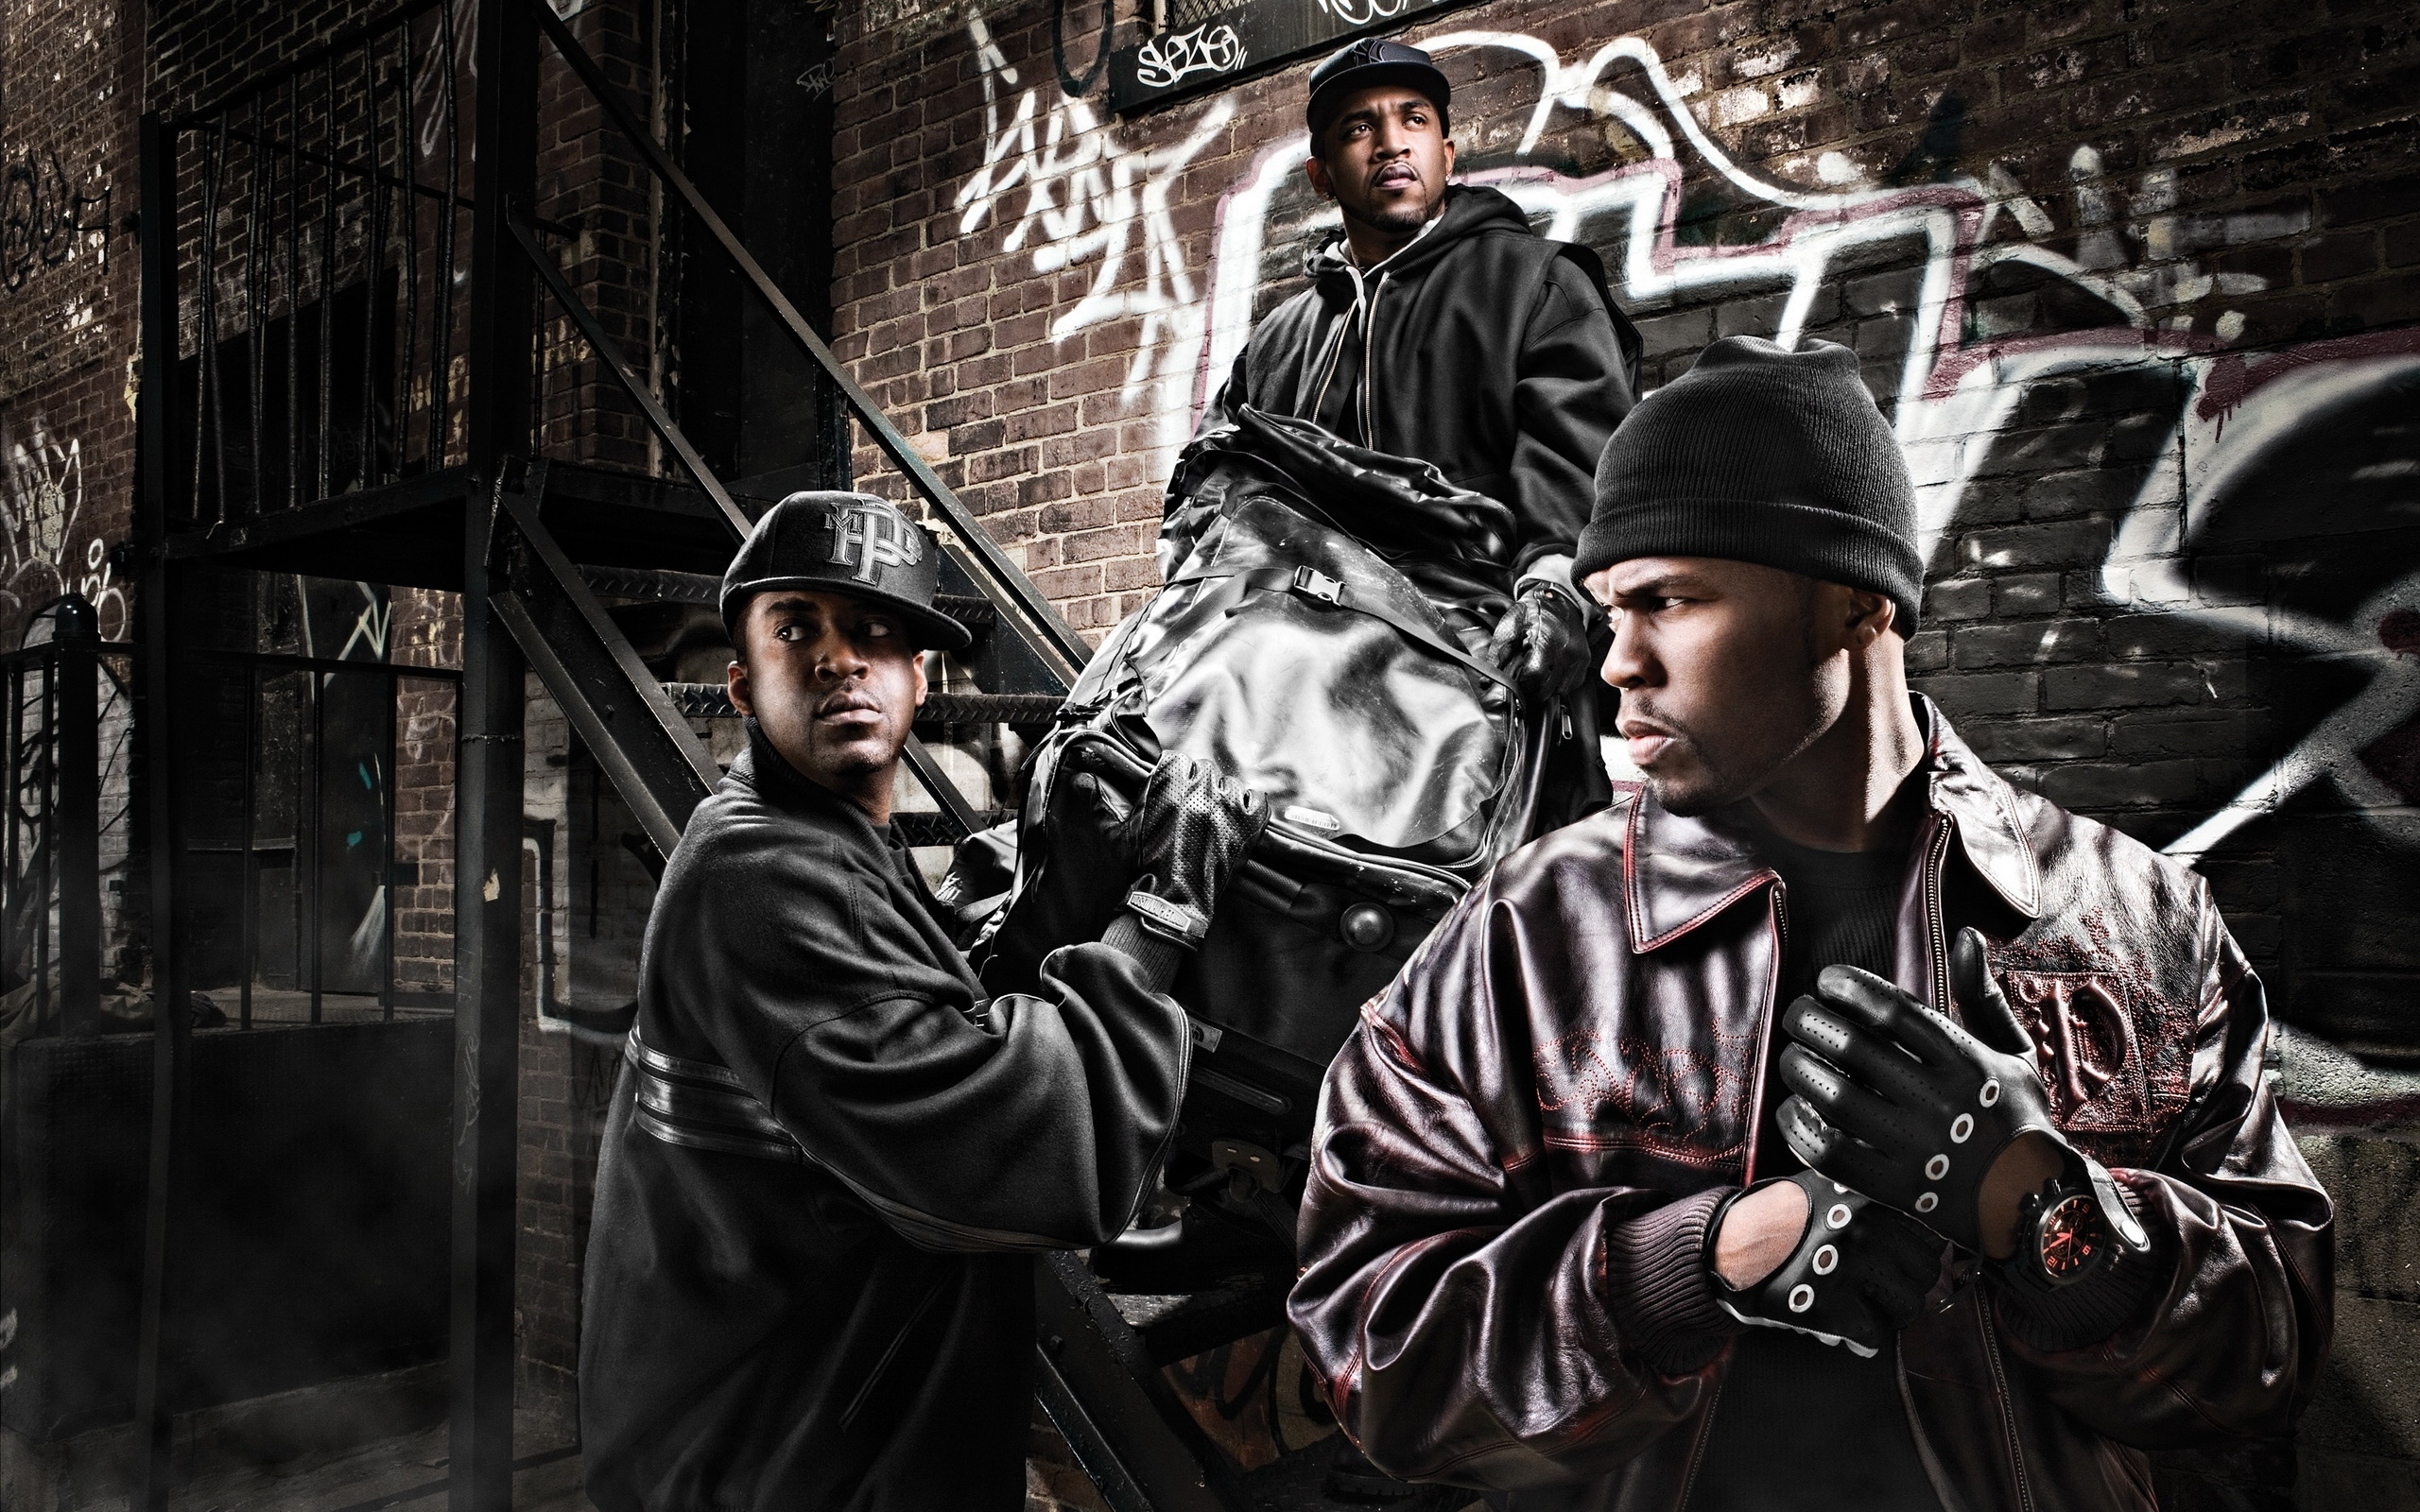 50 Cent Wallpapers High Resolution and Quality Download 2560x1600